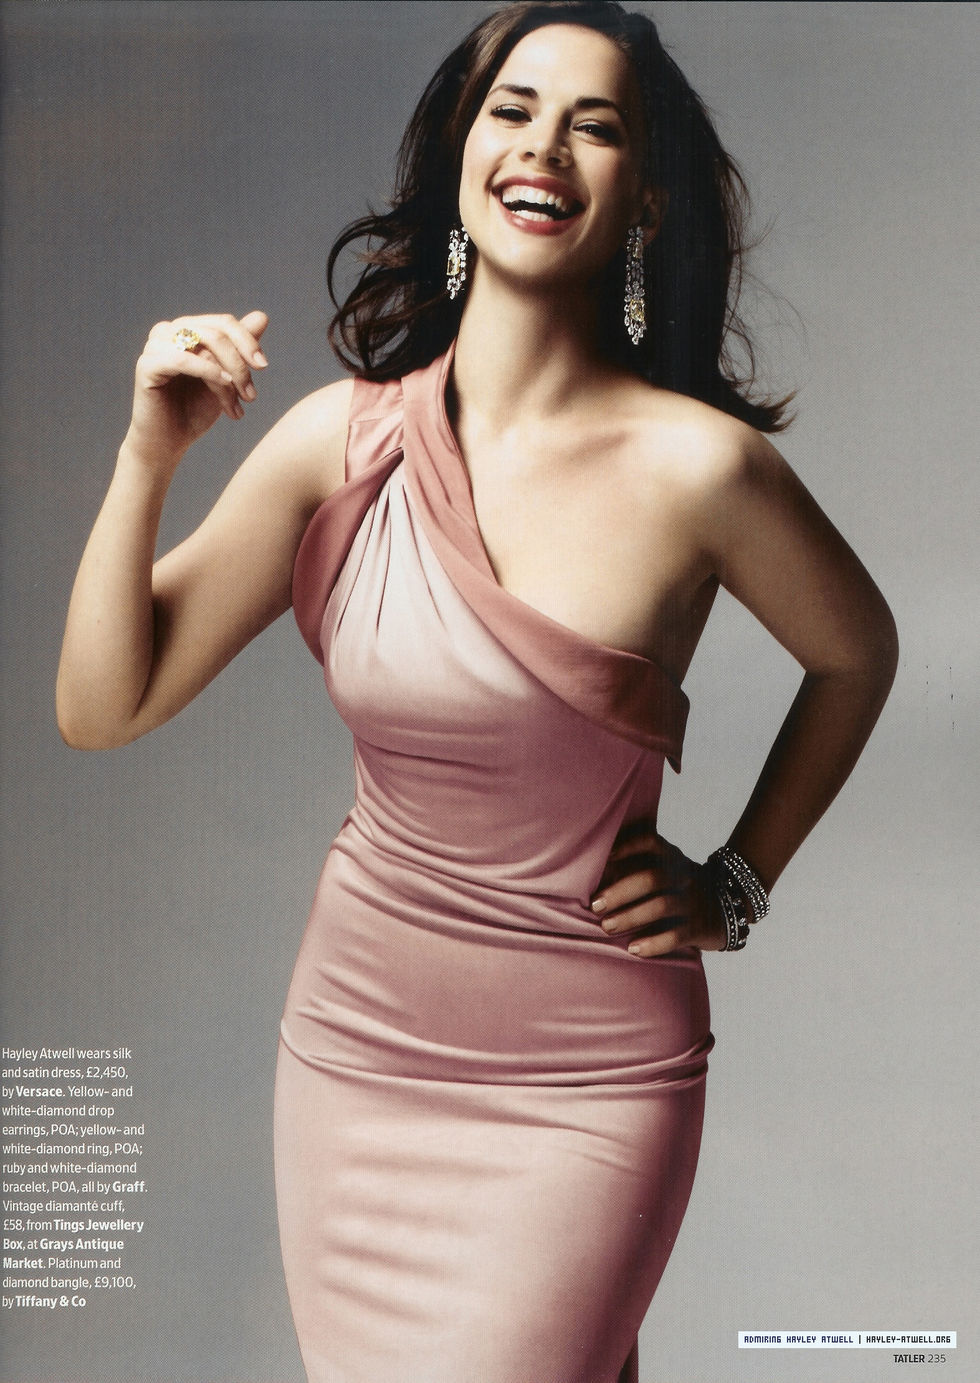 hayley-atwell-tatler-magazine-november-2008-01